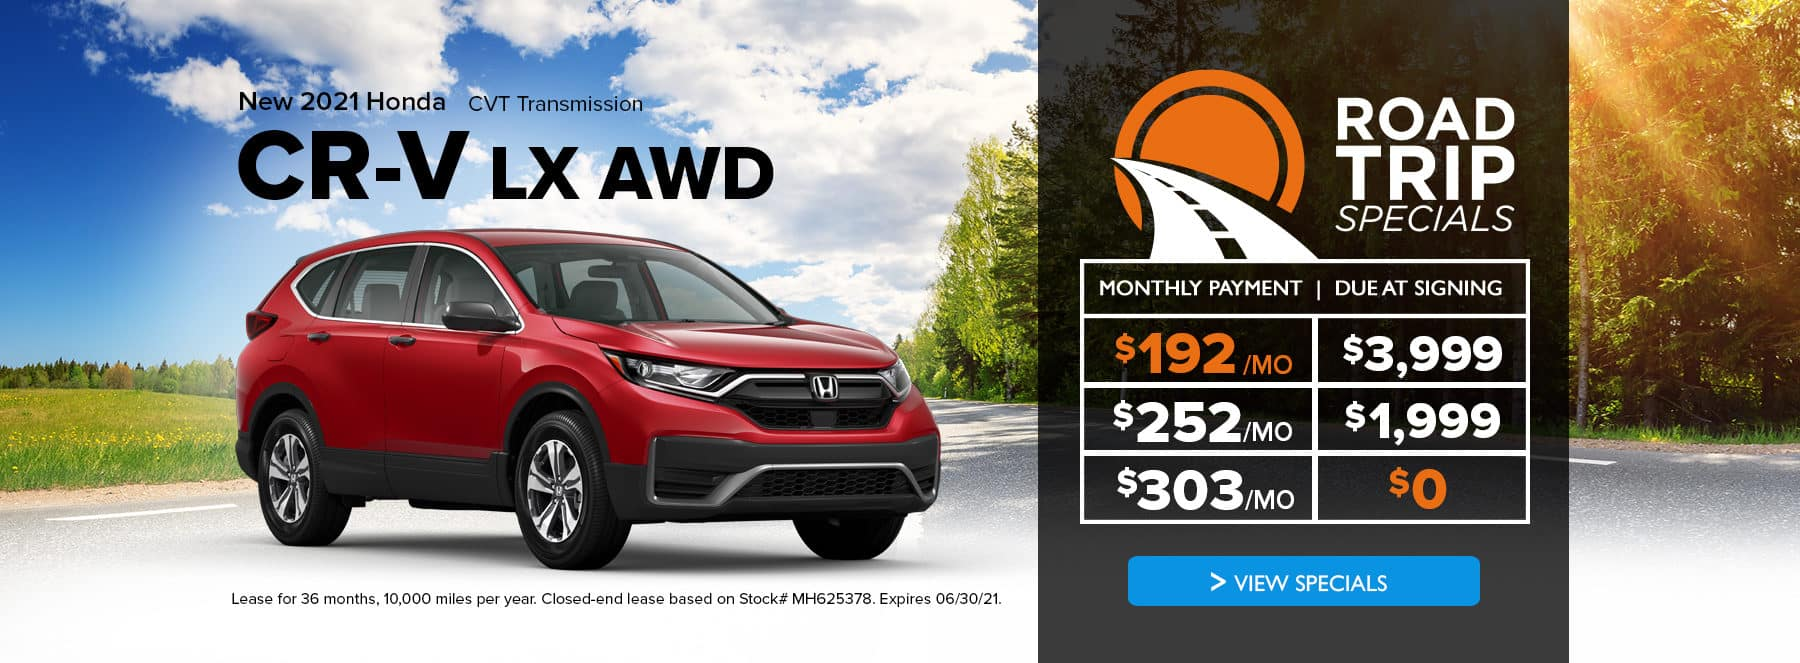 A new red 2021 honda cr-v with special lease offers